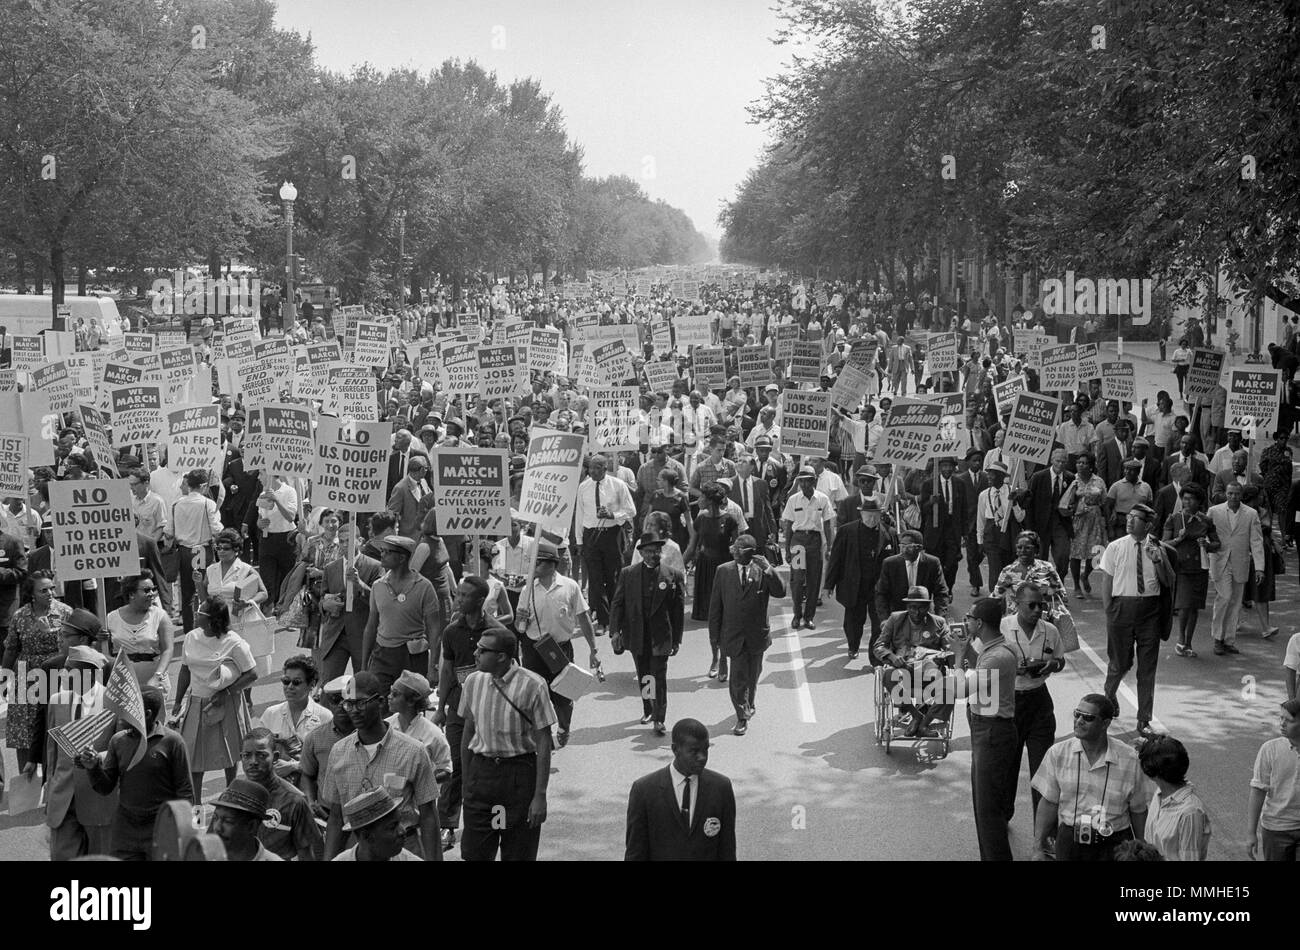 Civil rights marchers in the streets of Washington, D.C. August 28, 1963 - Stock Image